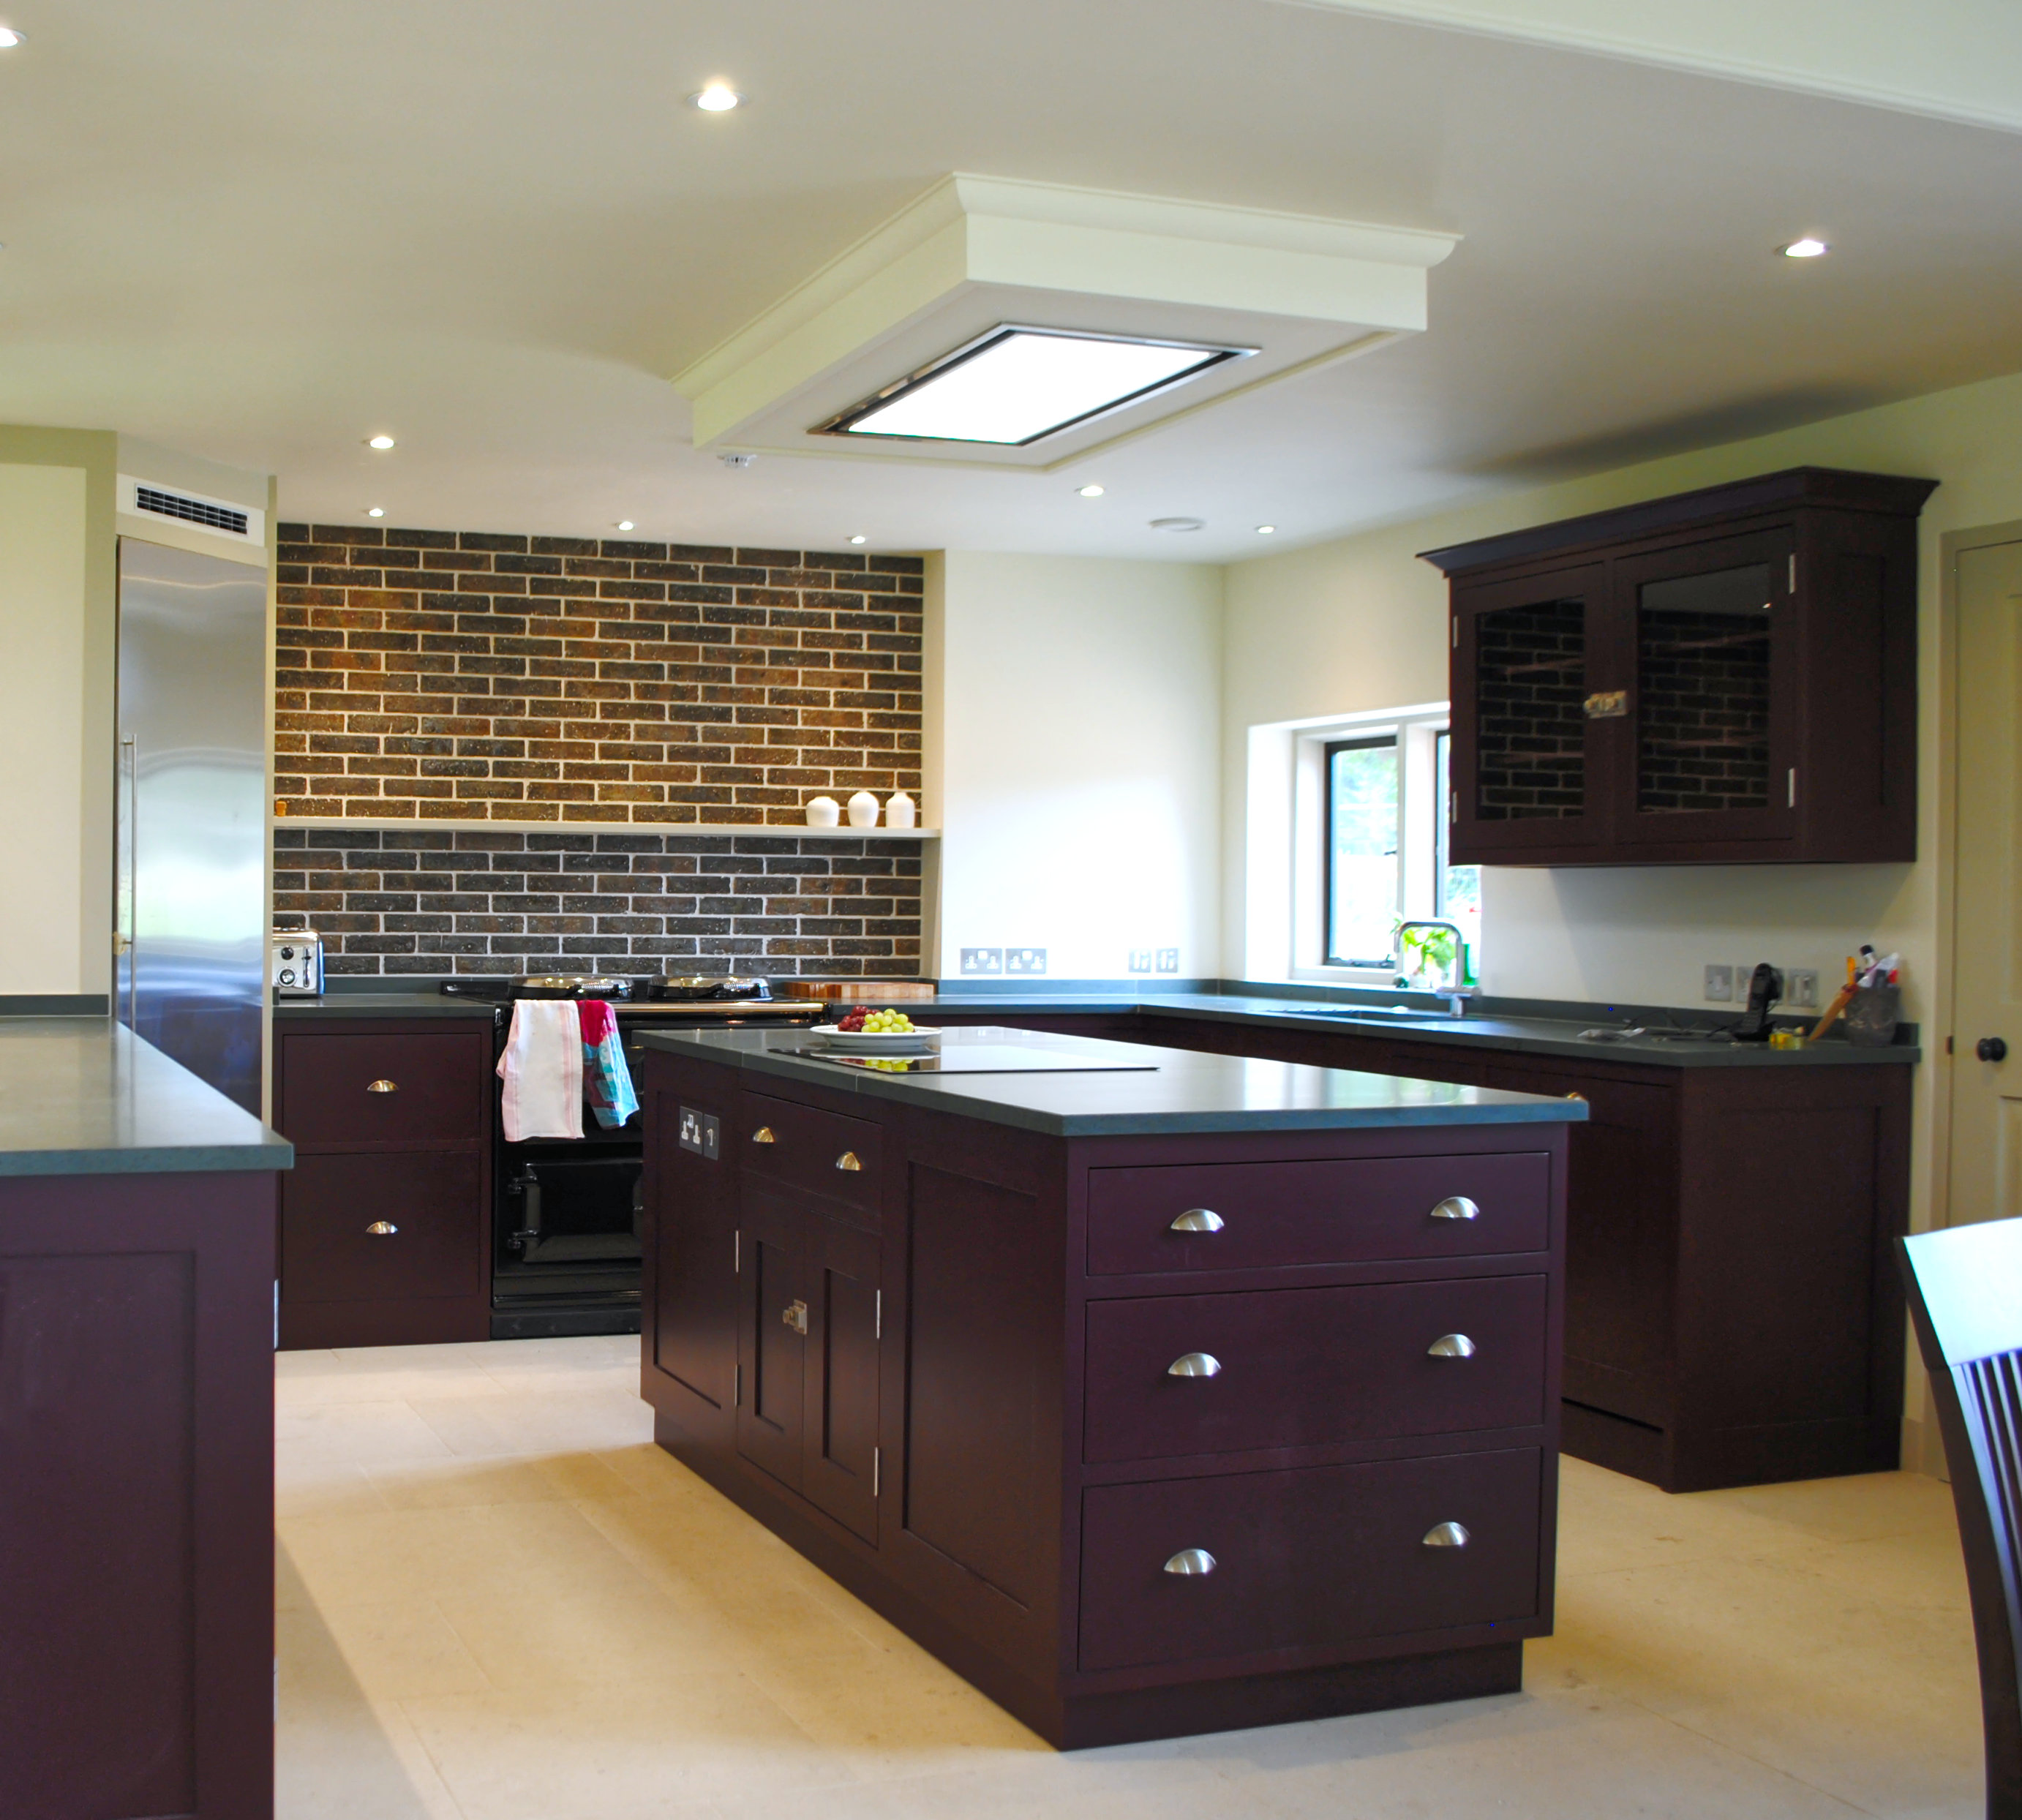 Kitchen with island unit